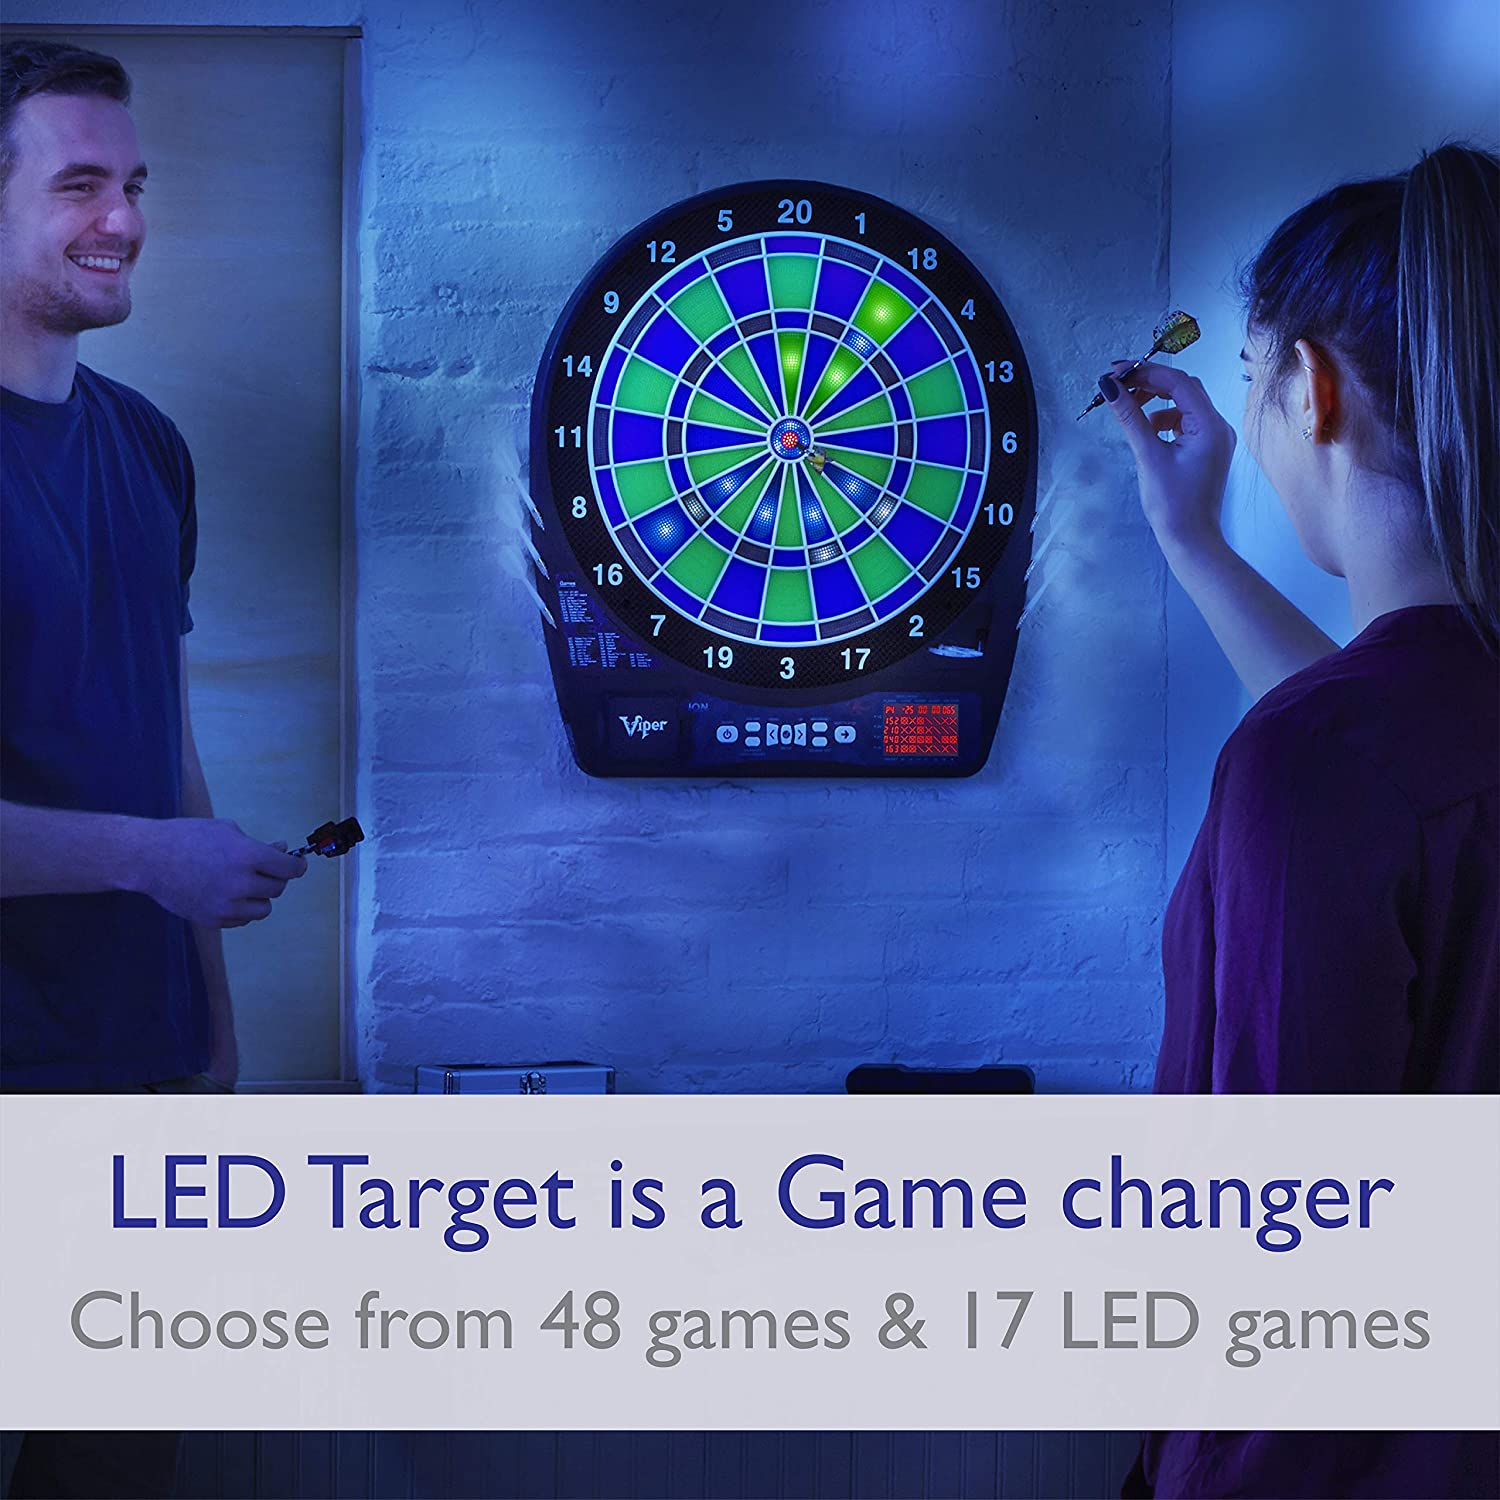 Viper Ion Electronic Dartboard, Illuminated Segments, Light Based Games, Green And Blue Segment Colors, Ultra Thin Spider to Increased Scoring Area, Target Tested Tough Segment For Enhanced Durability : Sports & Outdoors